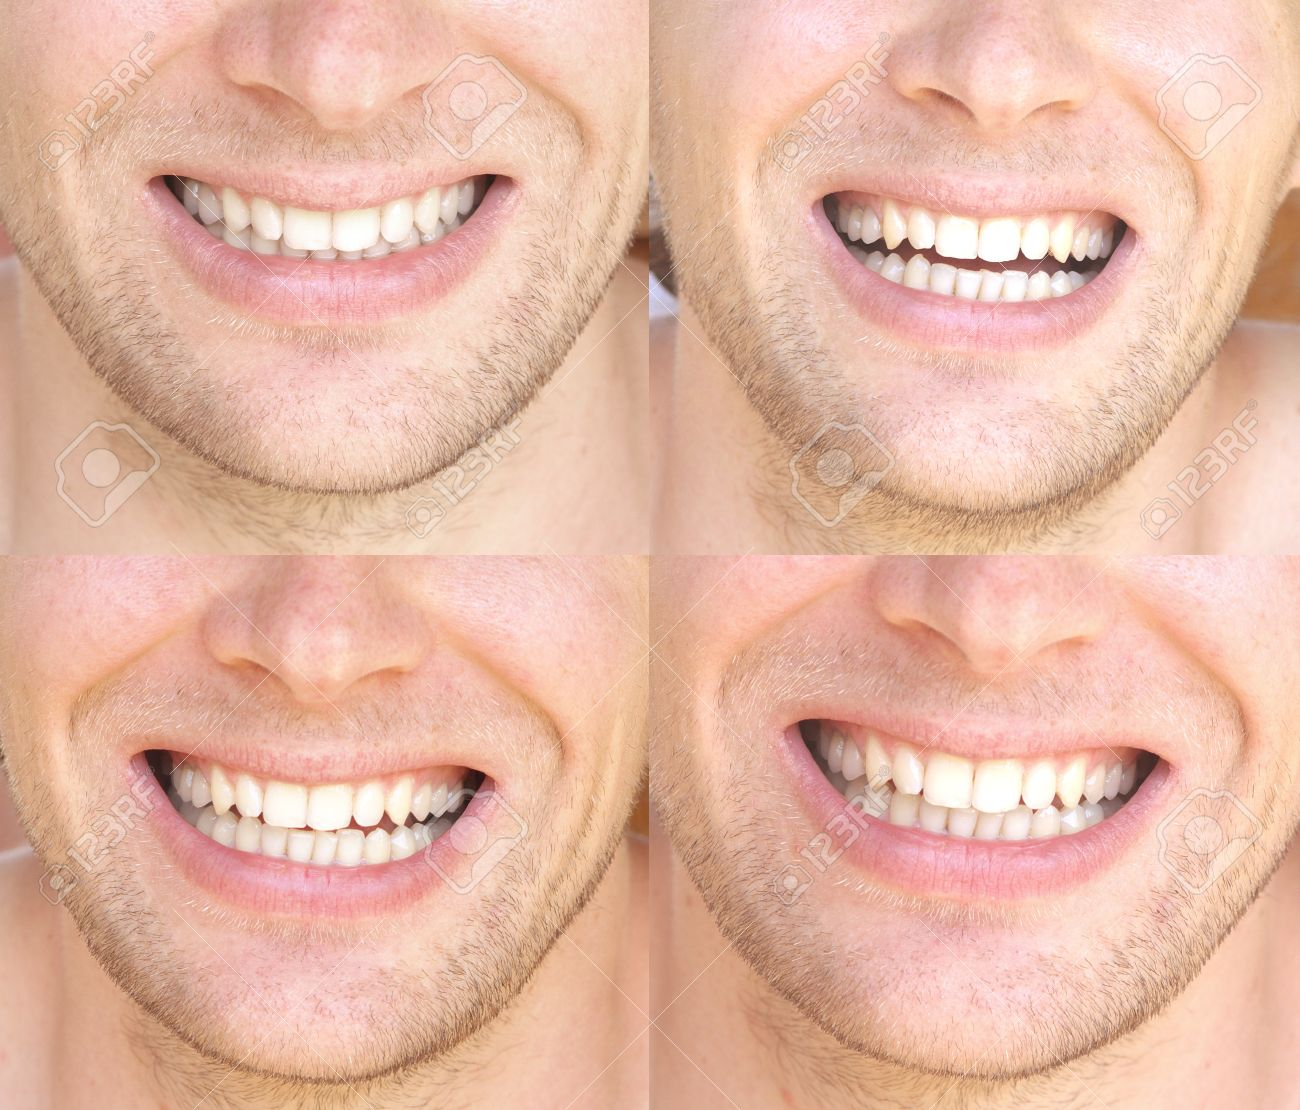 Smile Face Man with natural White Teeth Collage Dental Health Concept and Happiness Emotions Stock Photo - 21451646